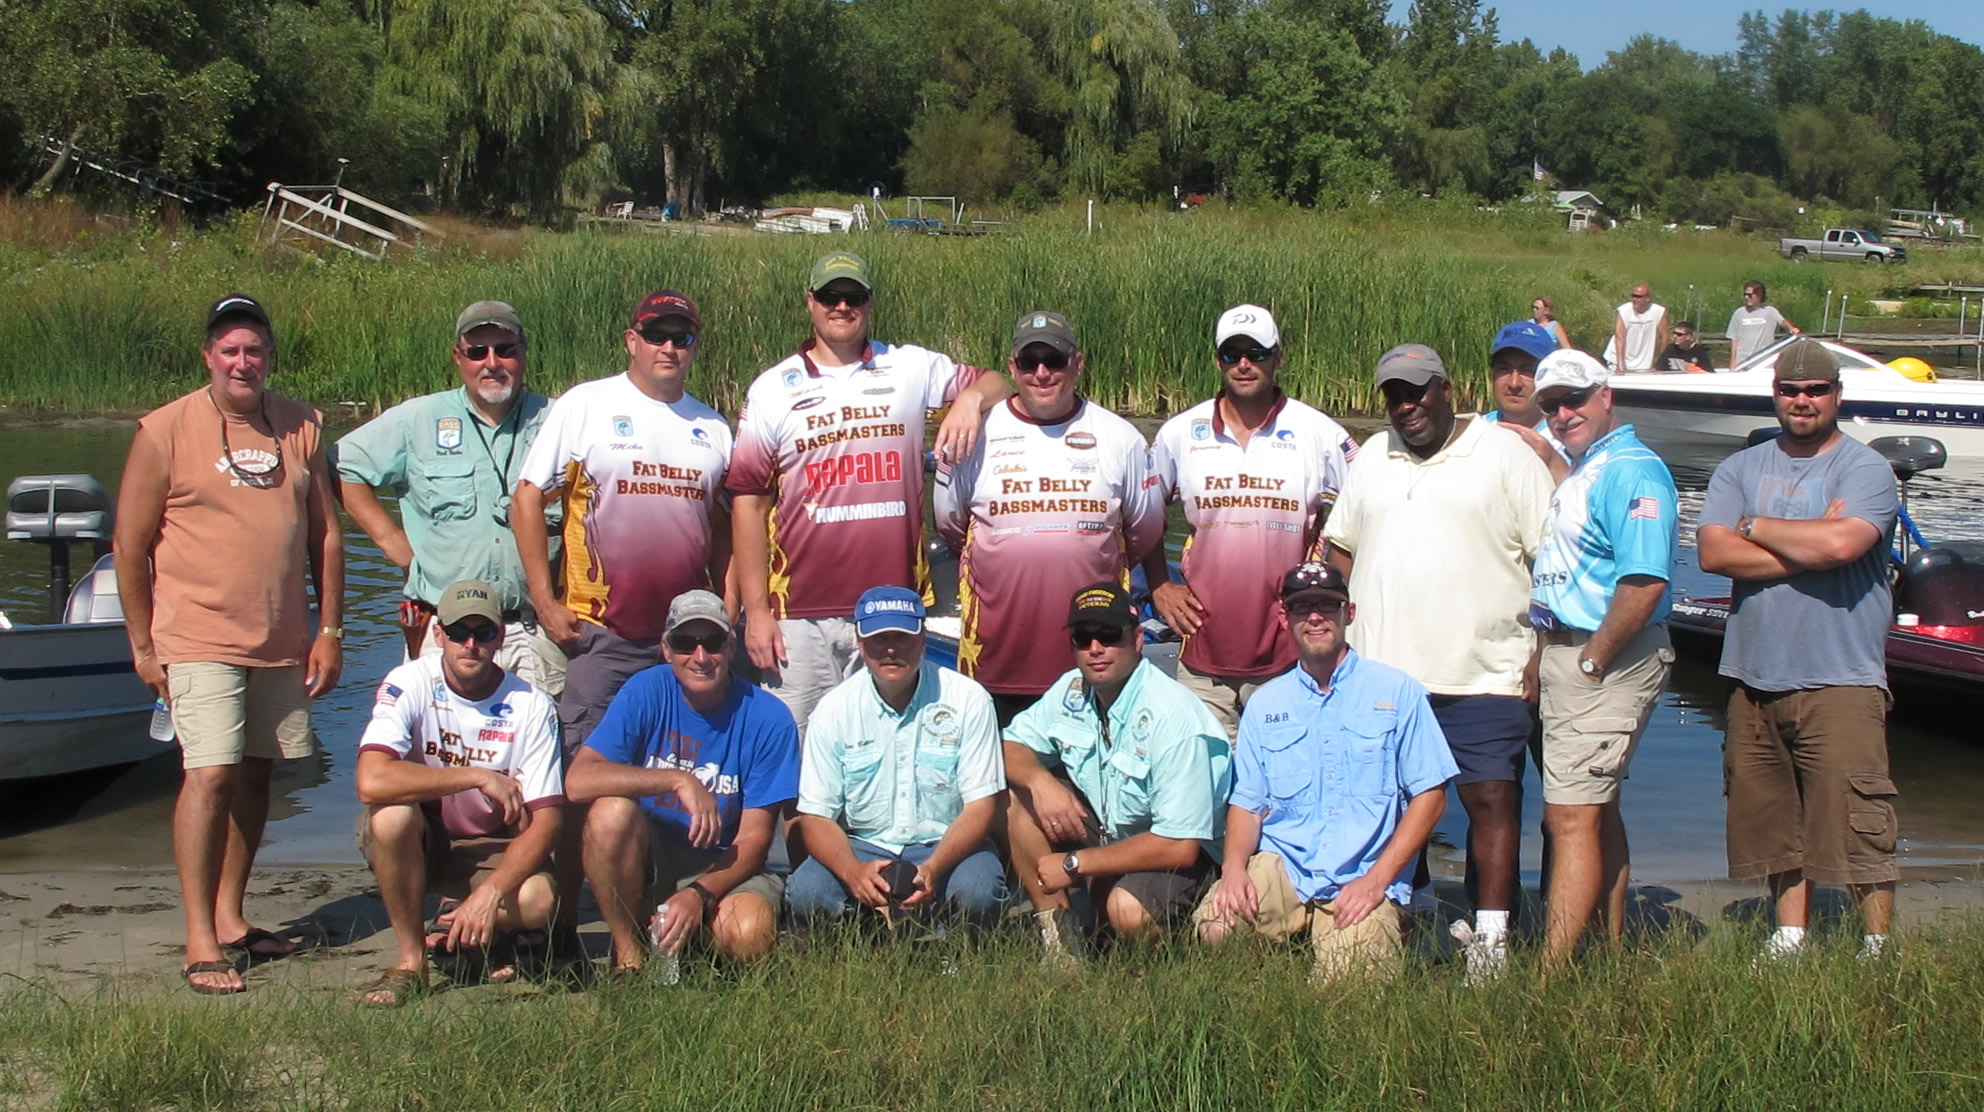 2012 Fat Belly Cup